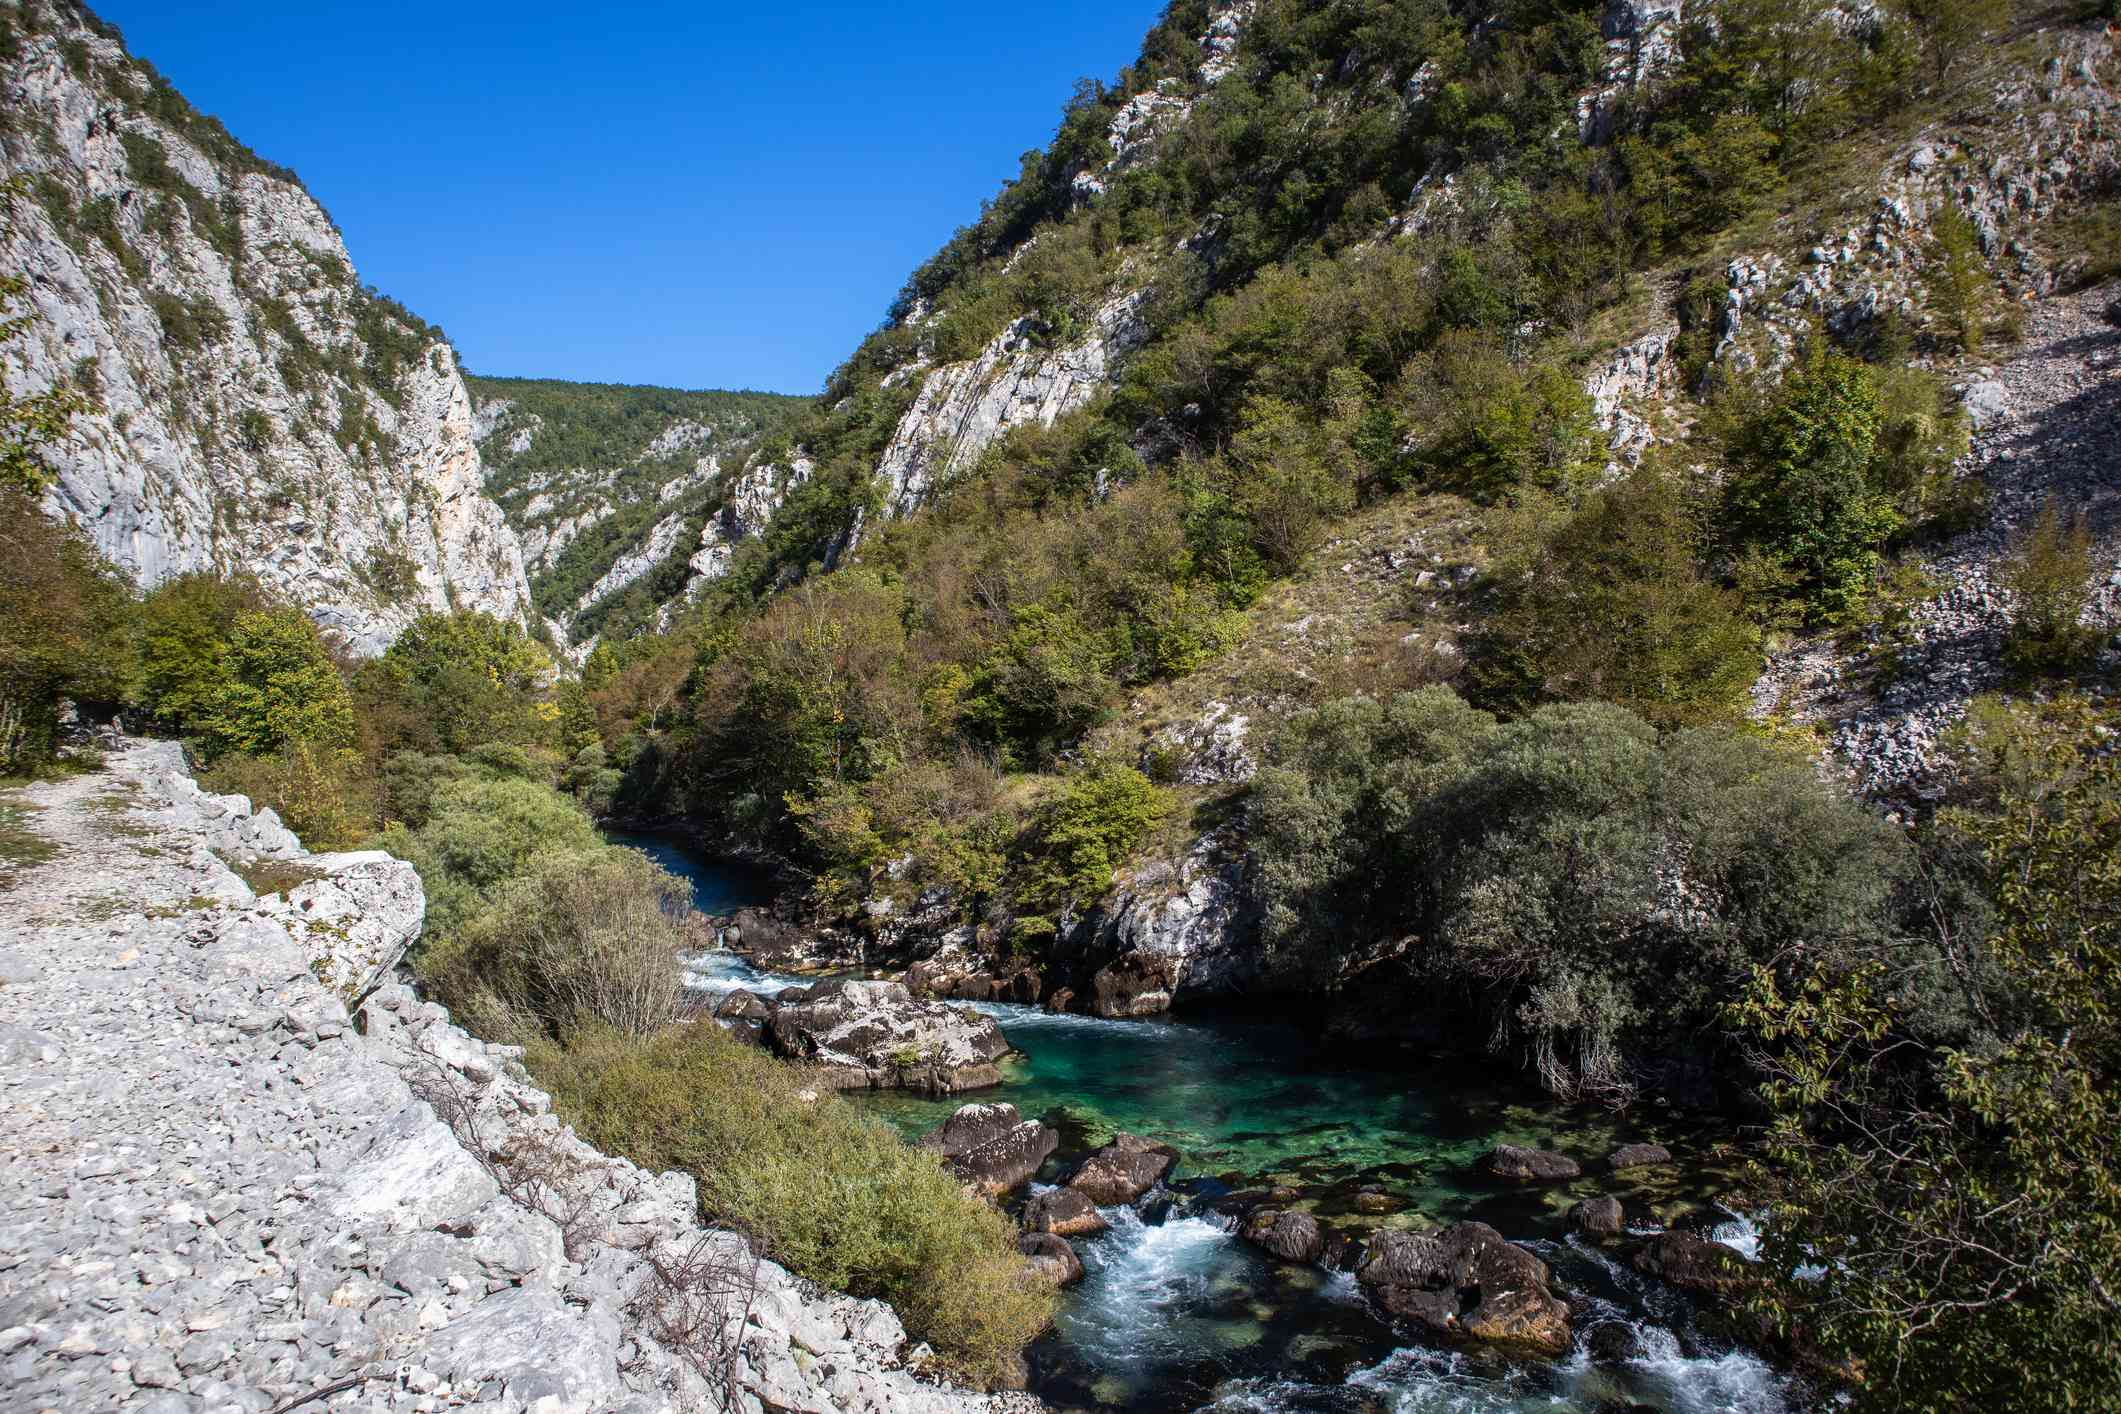 A turquoise colored river flows through rocky shrubland